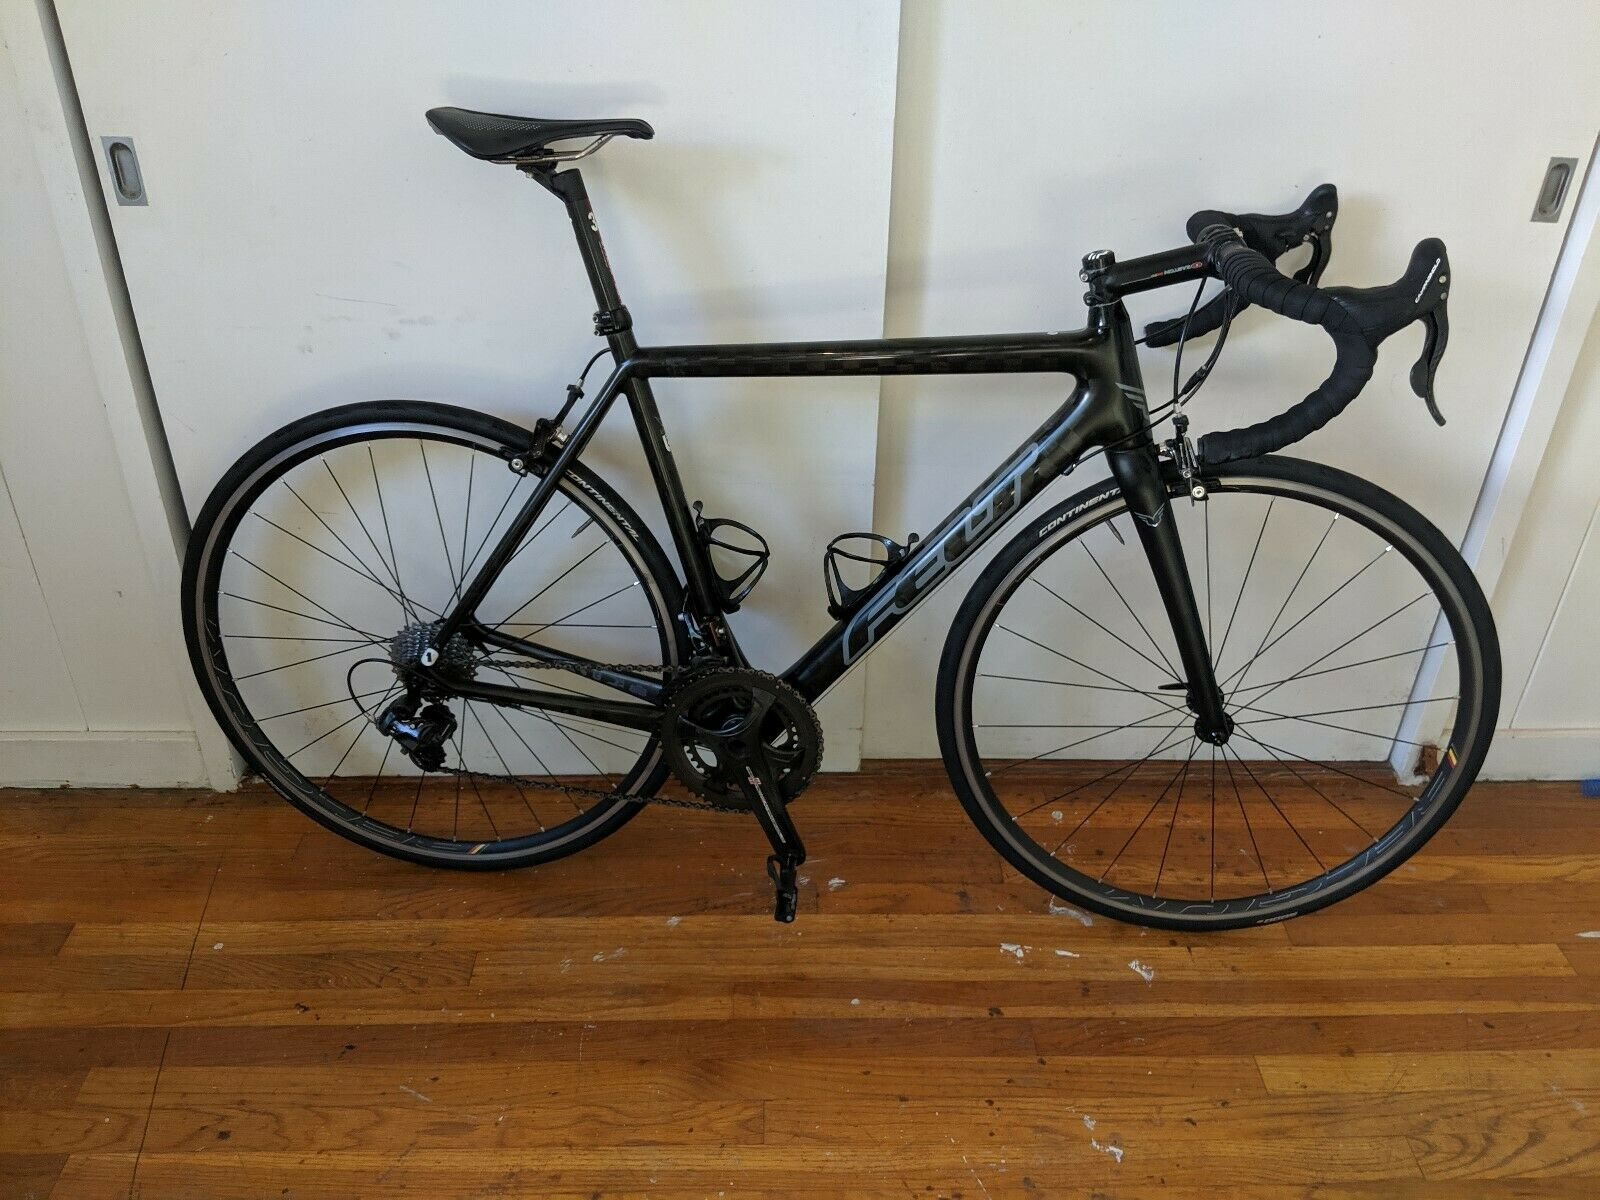 Still not giving it away...2016 Felt F1, Size 56cm Campy Super Record, more